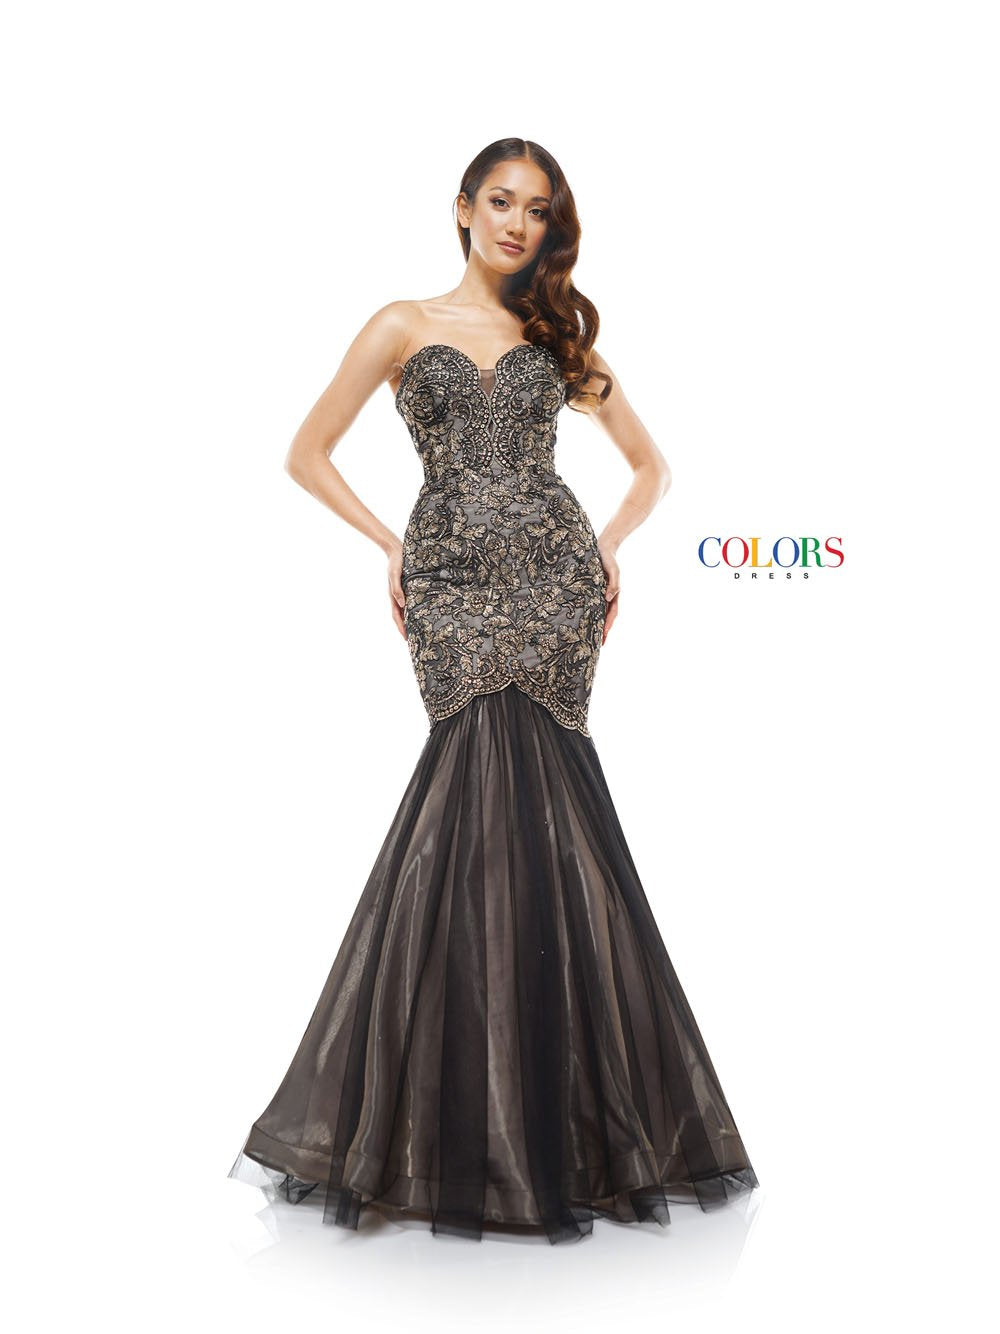 Colors Dress 2163 prom dress images.  Colors 2163 dresses are available in these colors: Black Gold, Black Silver.